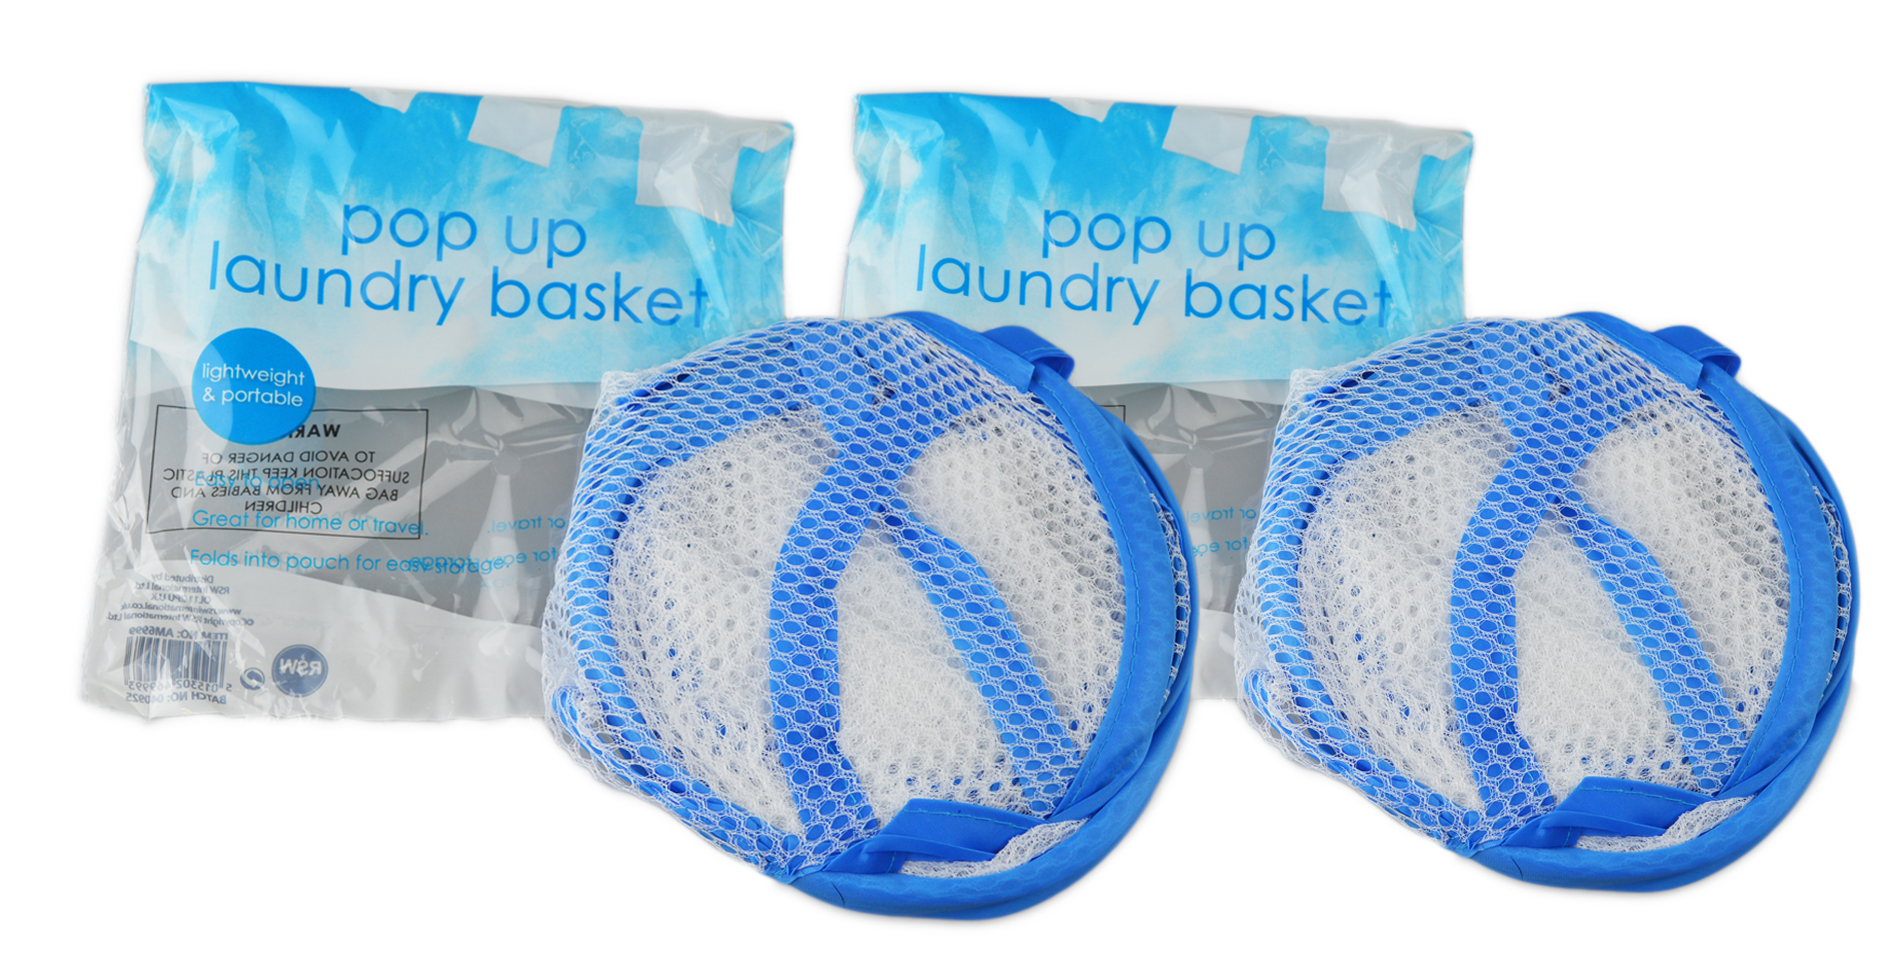 Folding-Mesh-Laundry-Basket-Ideal-for-Home-or-Travel-034-Royle-Home-034 thumbnail 9